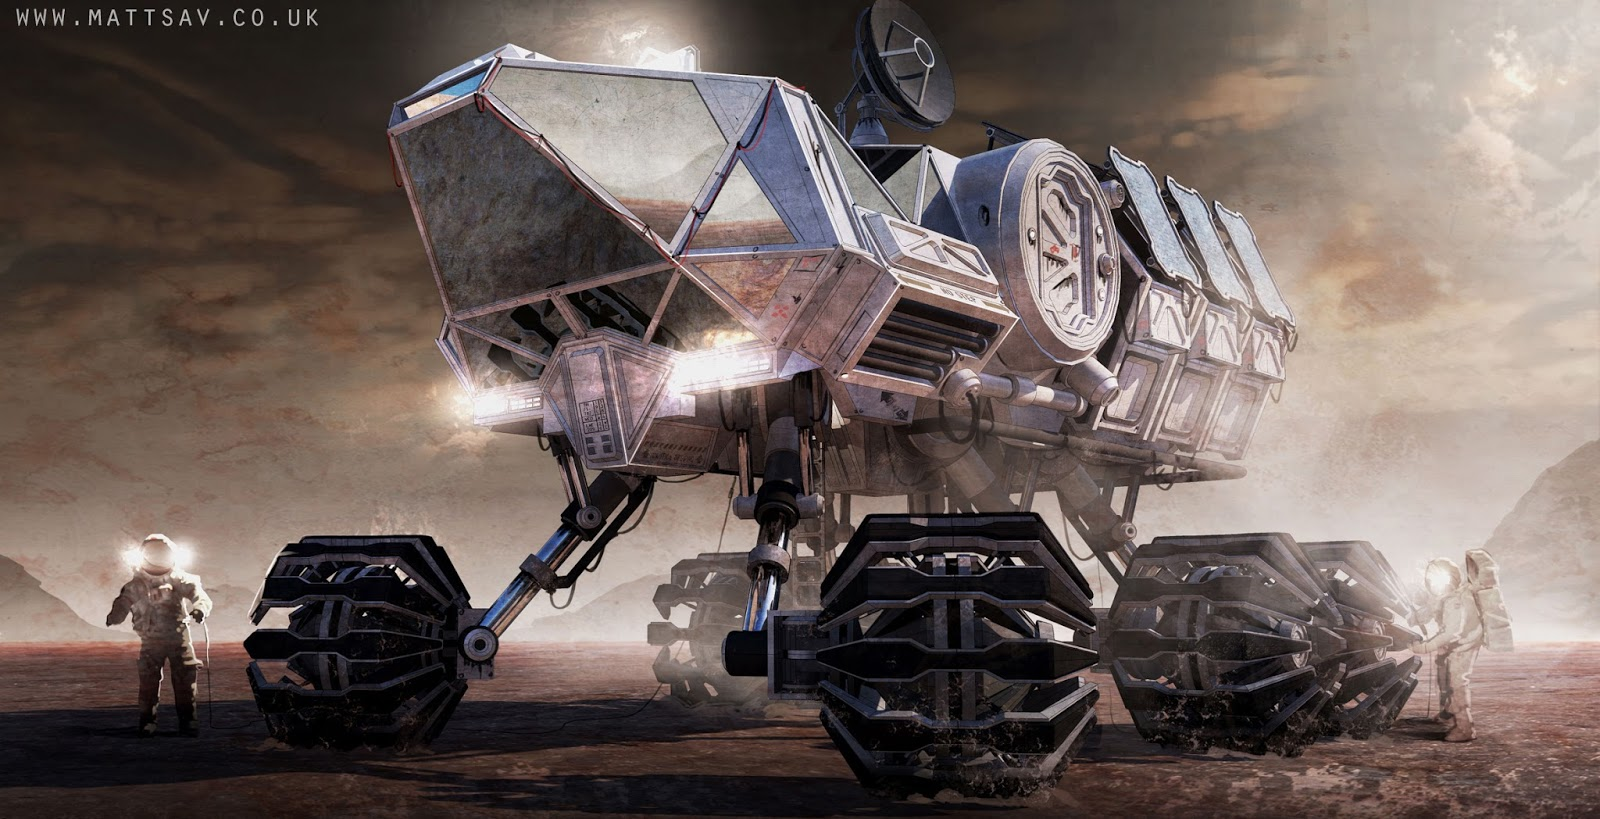 Mars exploration rover concept by Matthew Savage